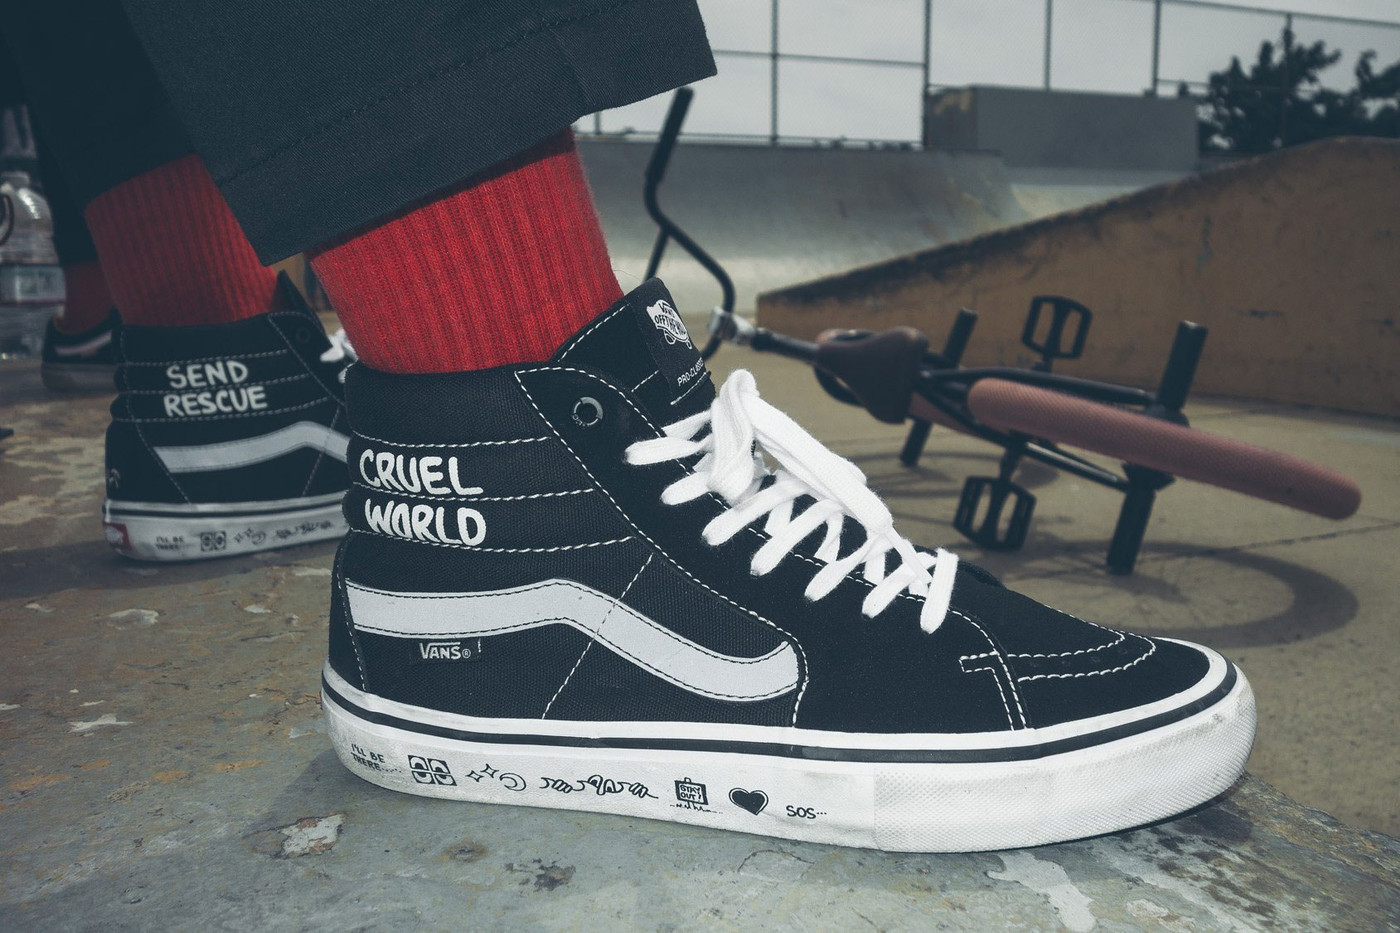 vans cult cruel world